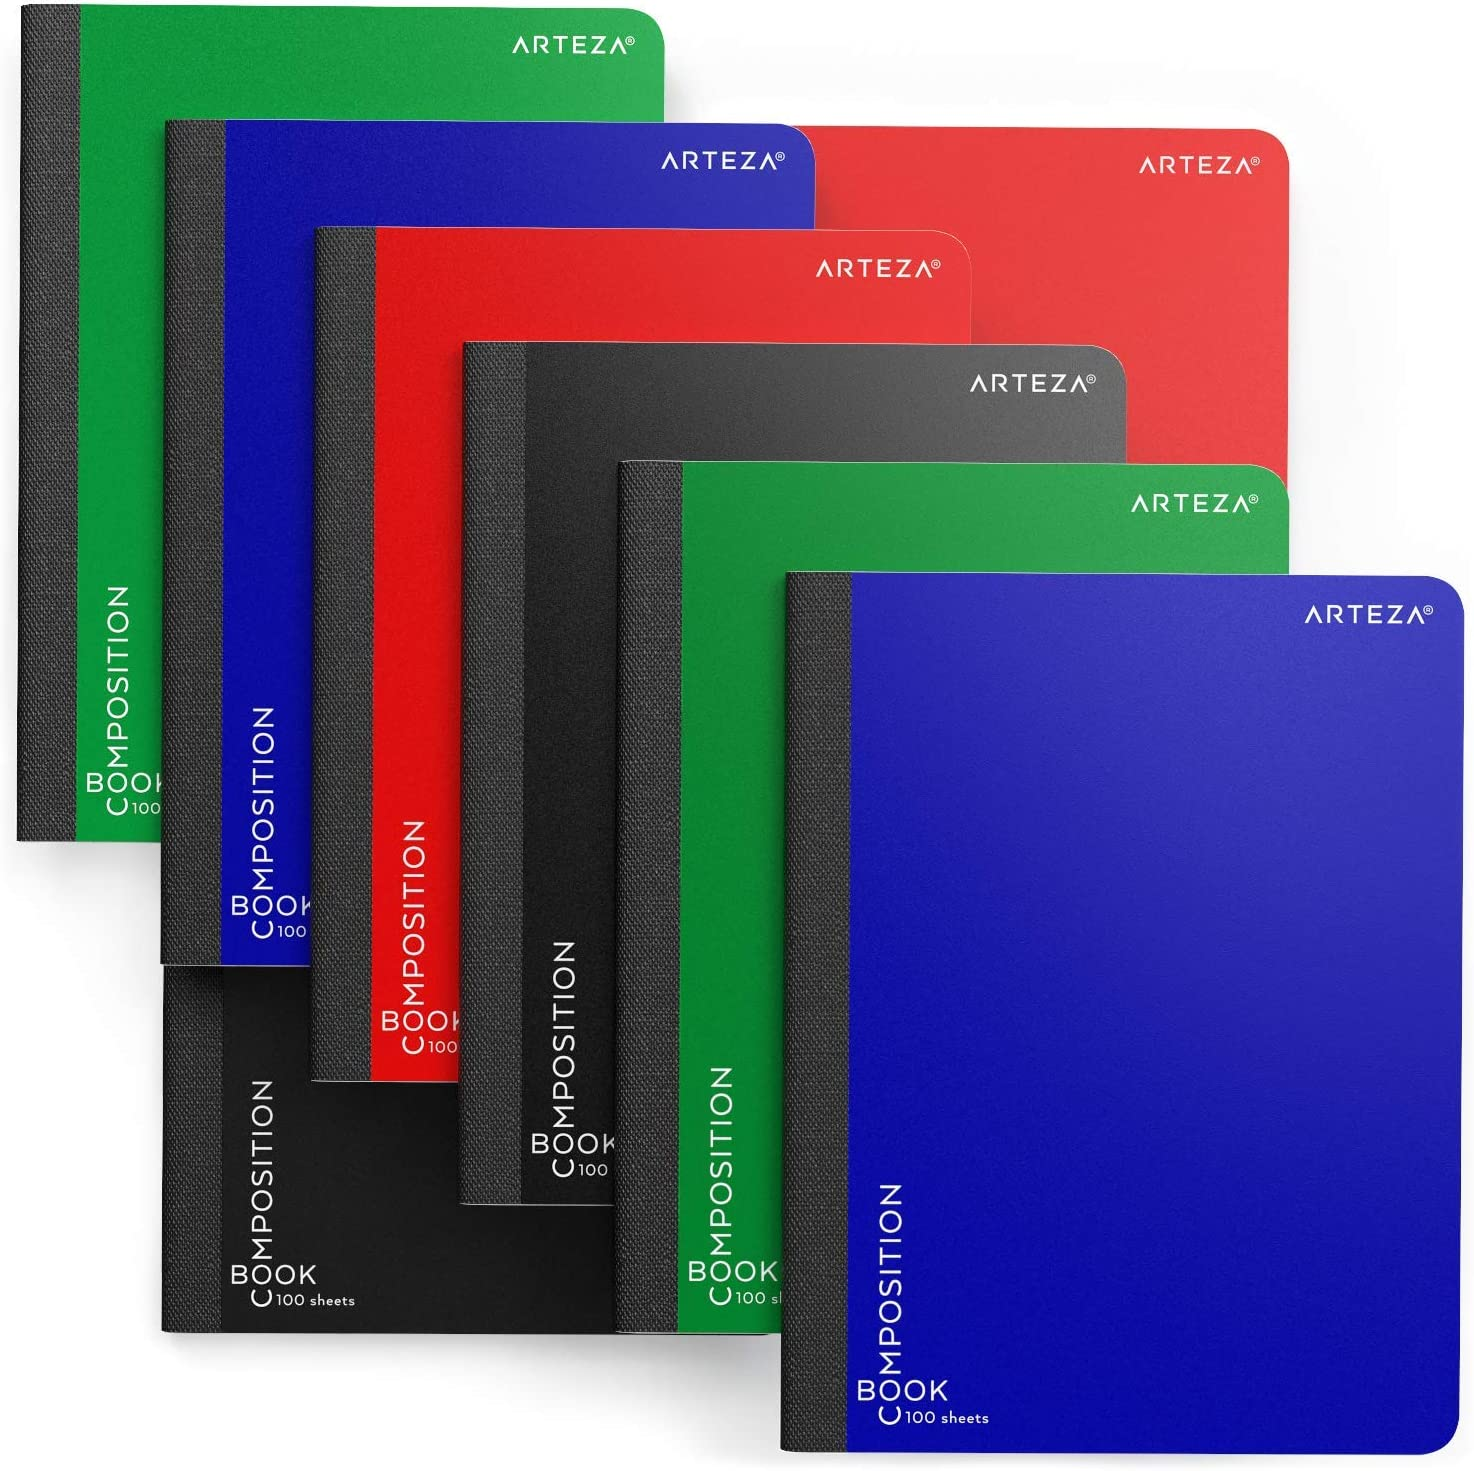 Arteza Composition Books, Wide Ruled, 100 Sheets, Pack of 8 in 4 Colors, 9.75x7.5-inch, Double Sided for Students, College Classes, Schoolwork, Studying, and Notes